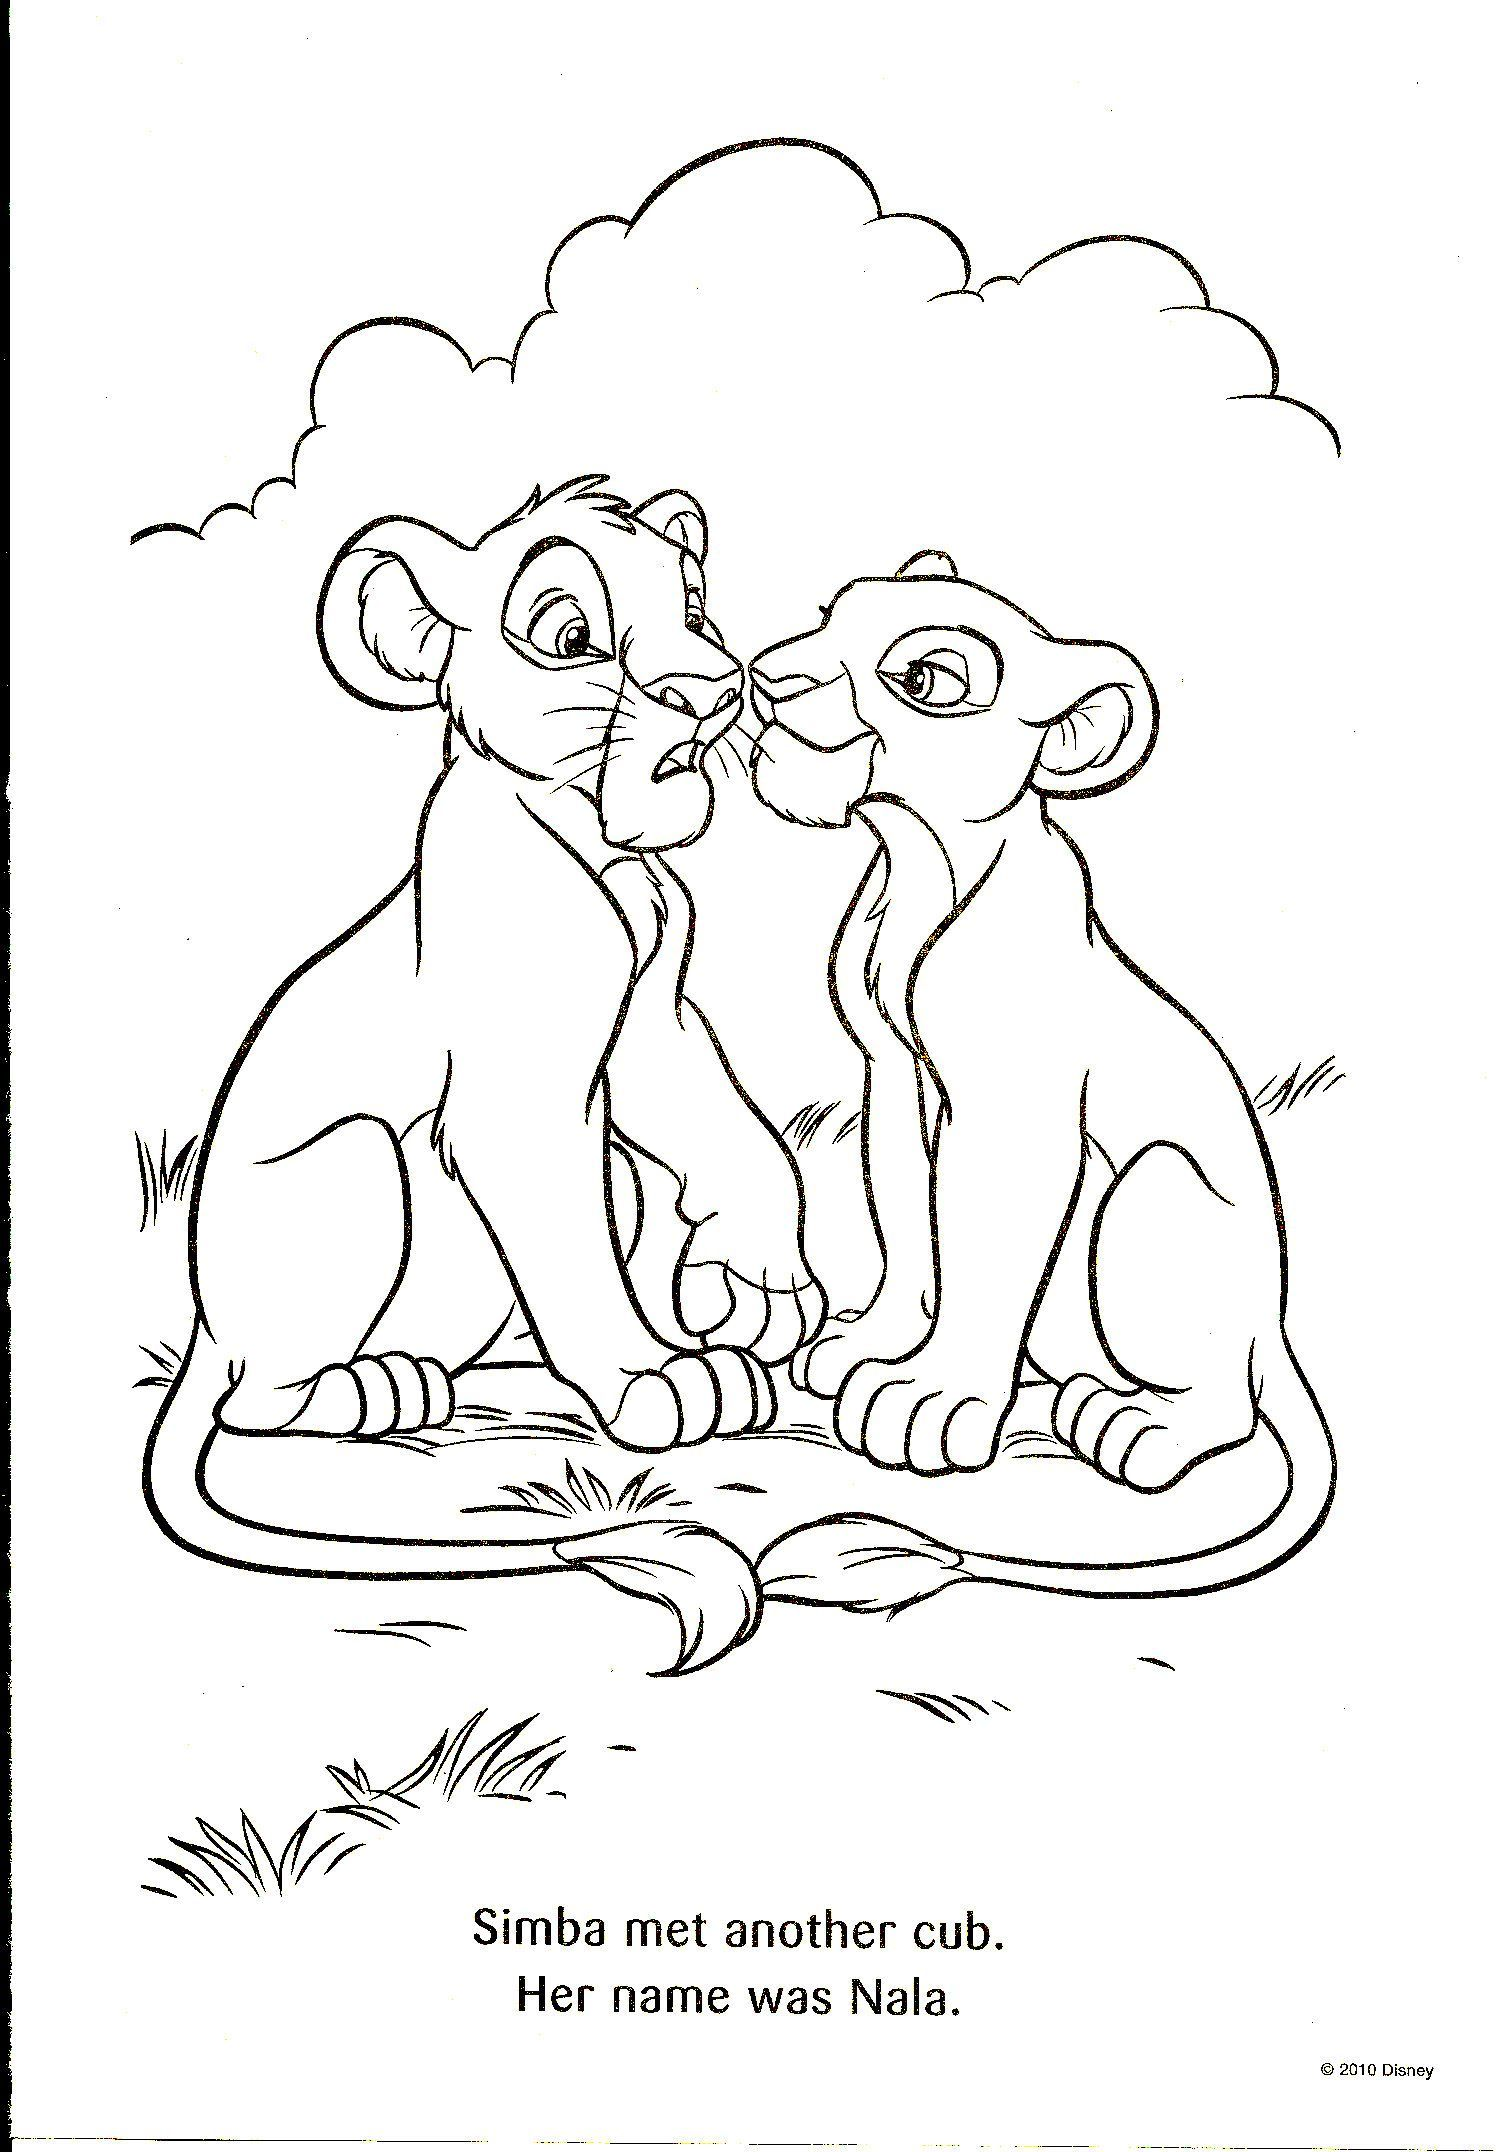 Pin By Carla Sluiter On Coloring Pages And Fun Images To Draw Lion Coloring Pages Horse Coloring Pages Disney Coloring Pages